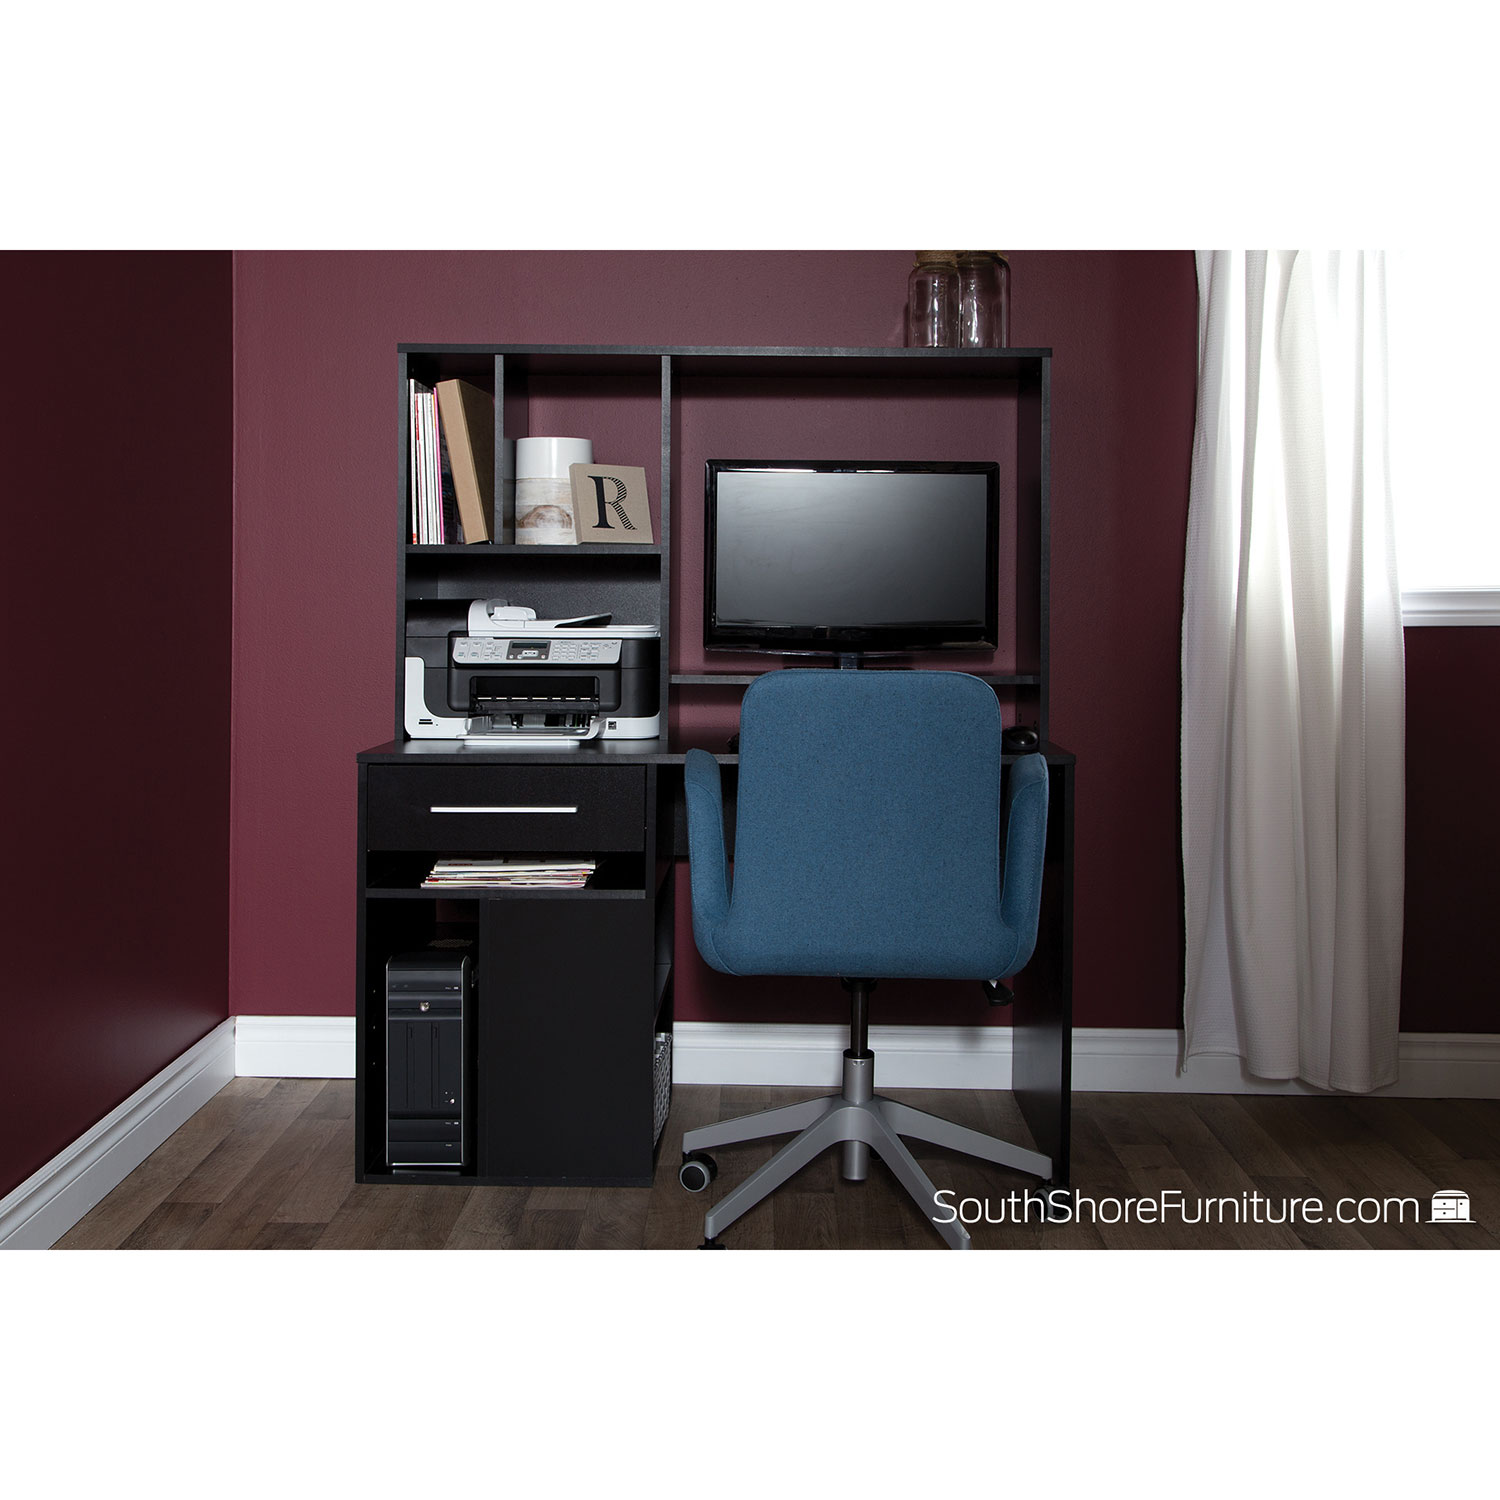 annexe drawer computer desk  pure black  desks  workstations  - annexe drawer computer desk  pure black  desks  workstations  bestbuy canada